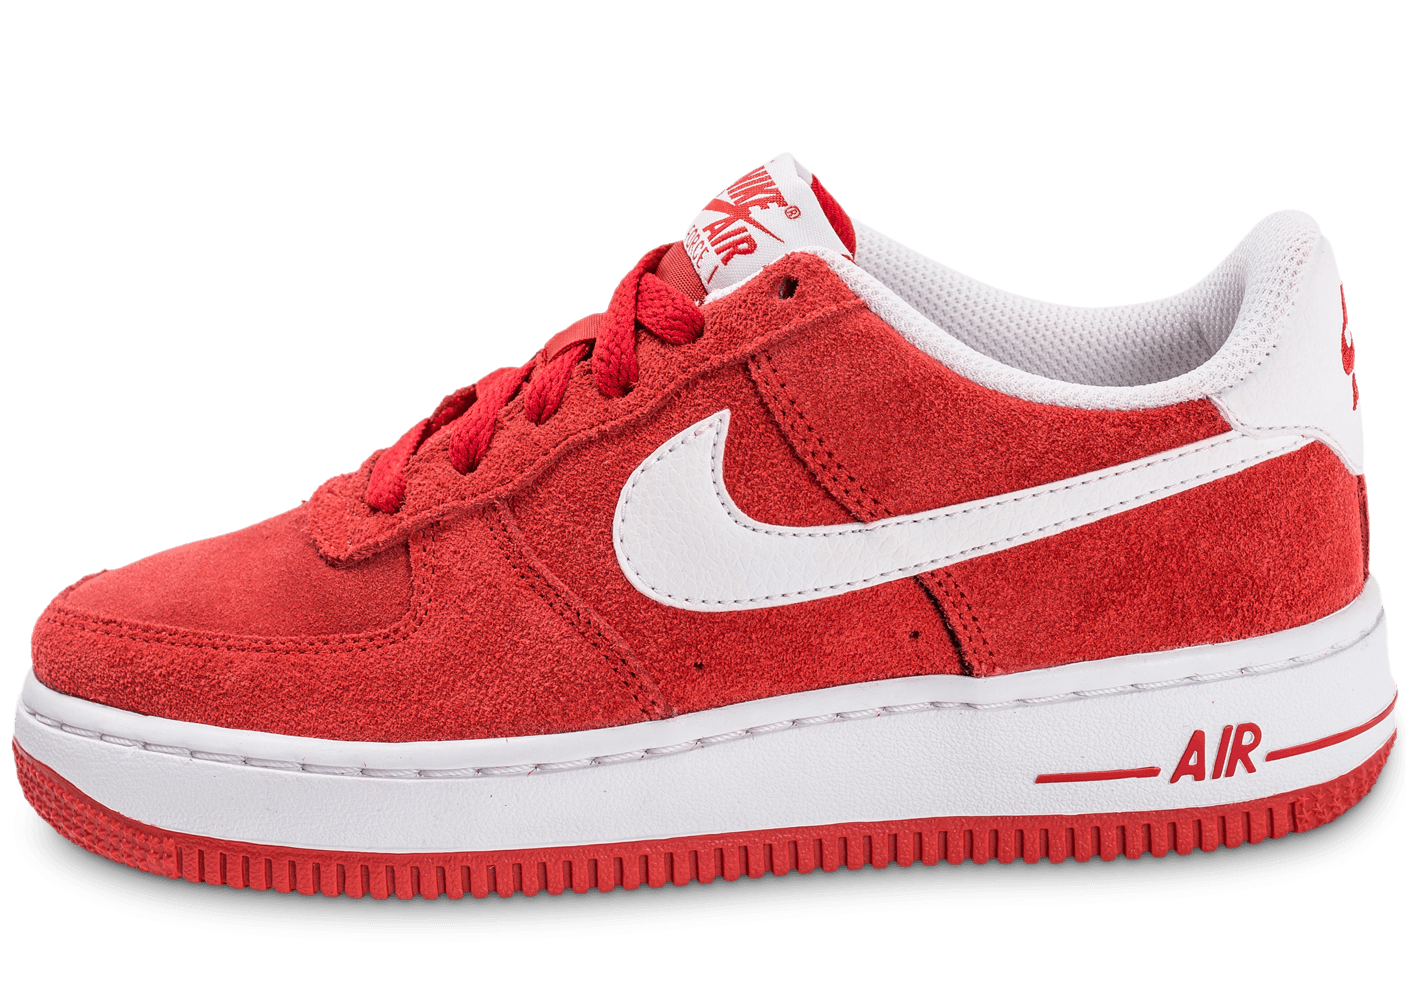 newest ae186 b991b nike air force 1 rouge, Soldes Nike Air Force 1 Suede Junior rouge -  Chaussures